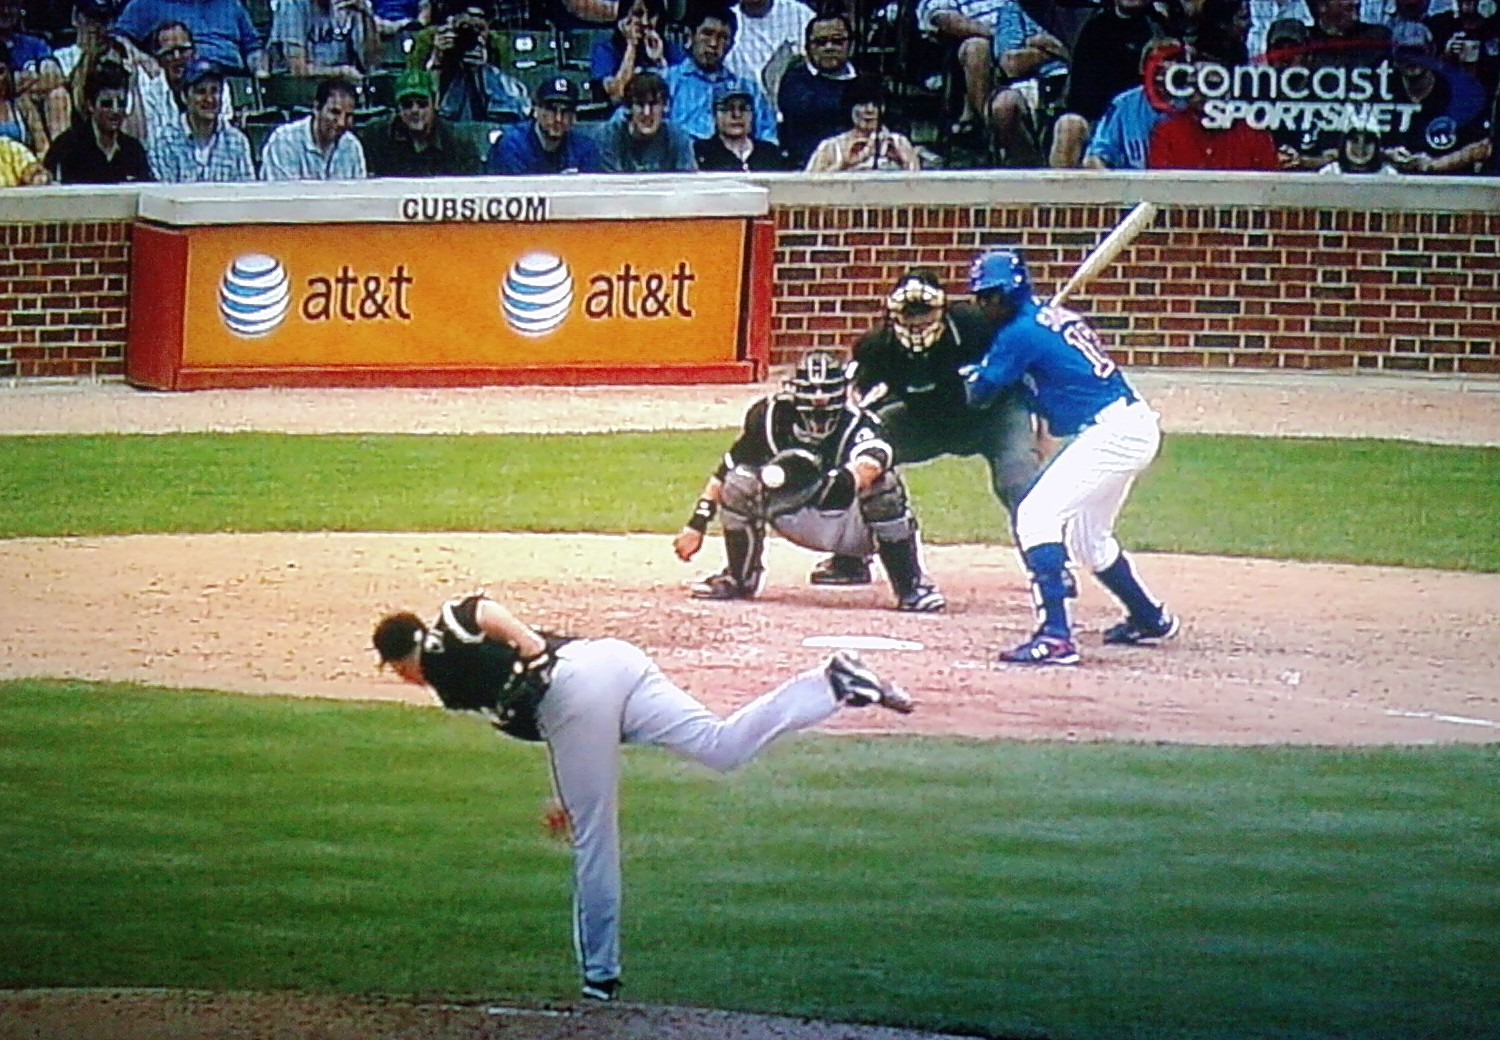 Soriano takes a pitch outside